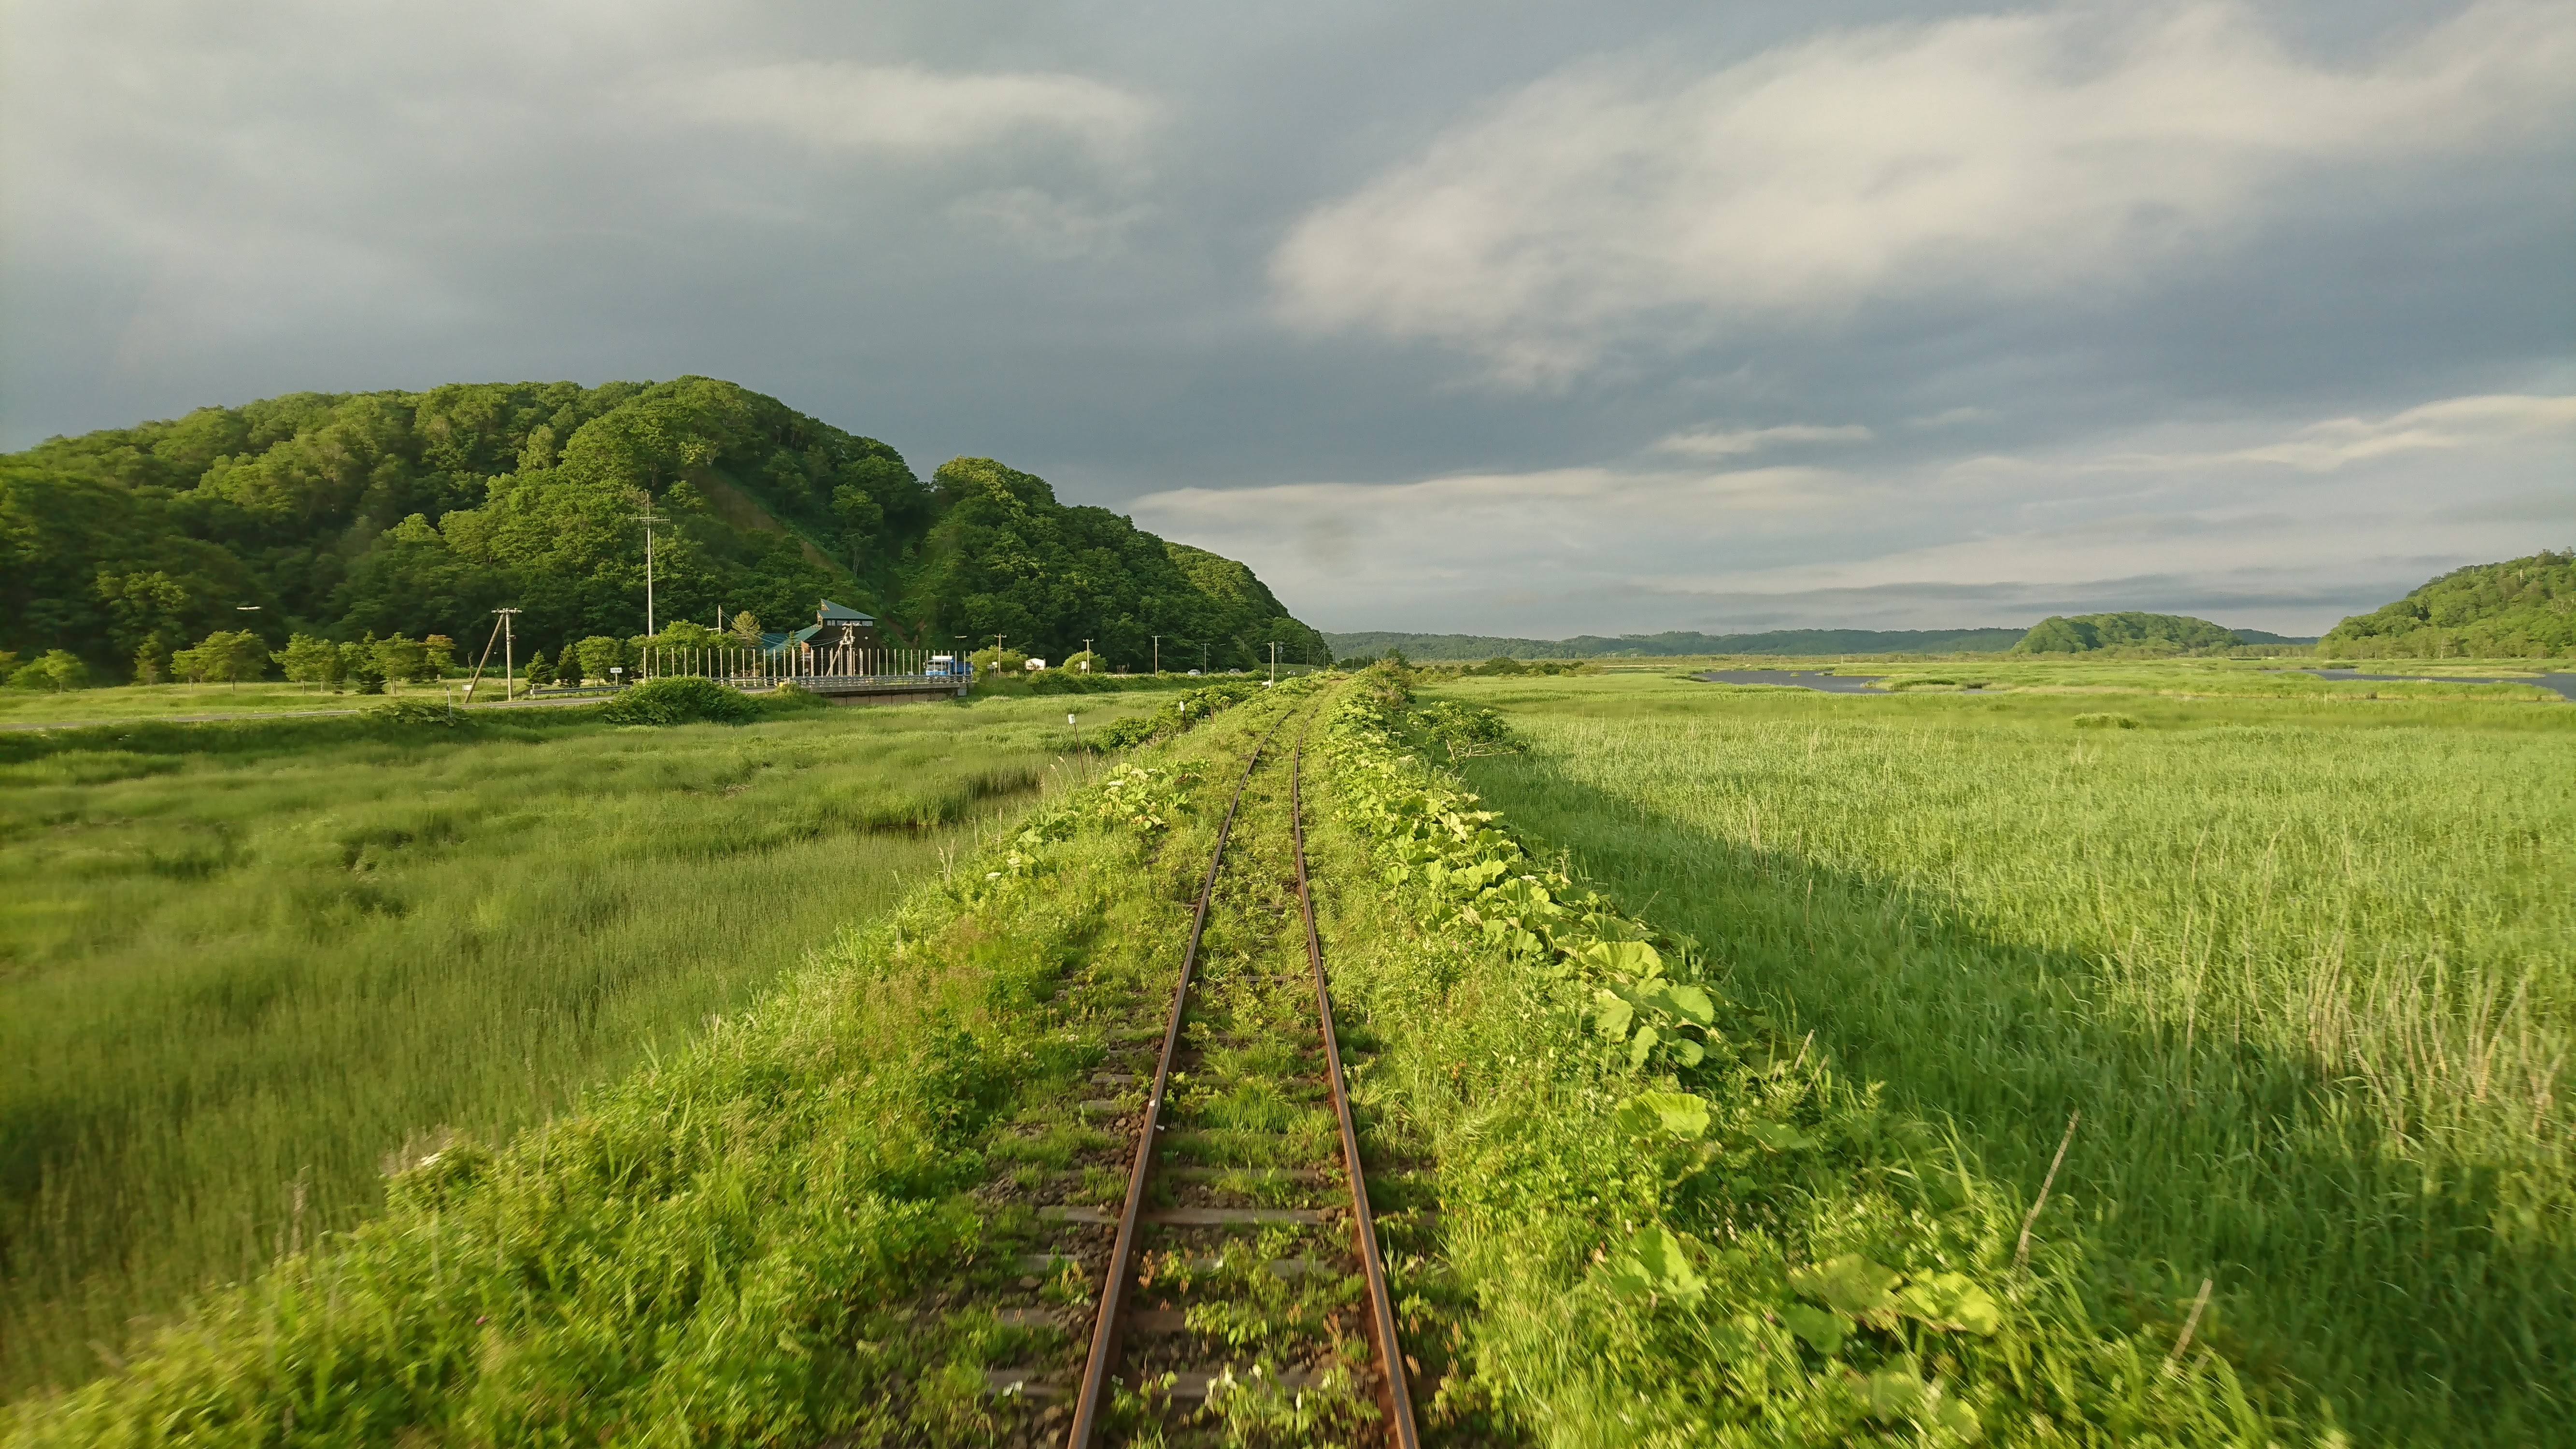 Tracks through marshland